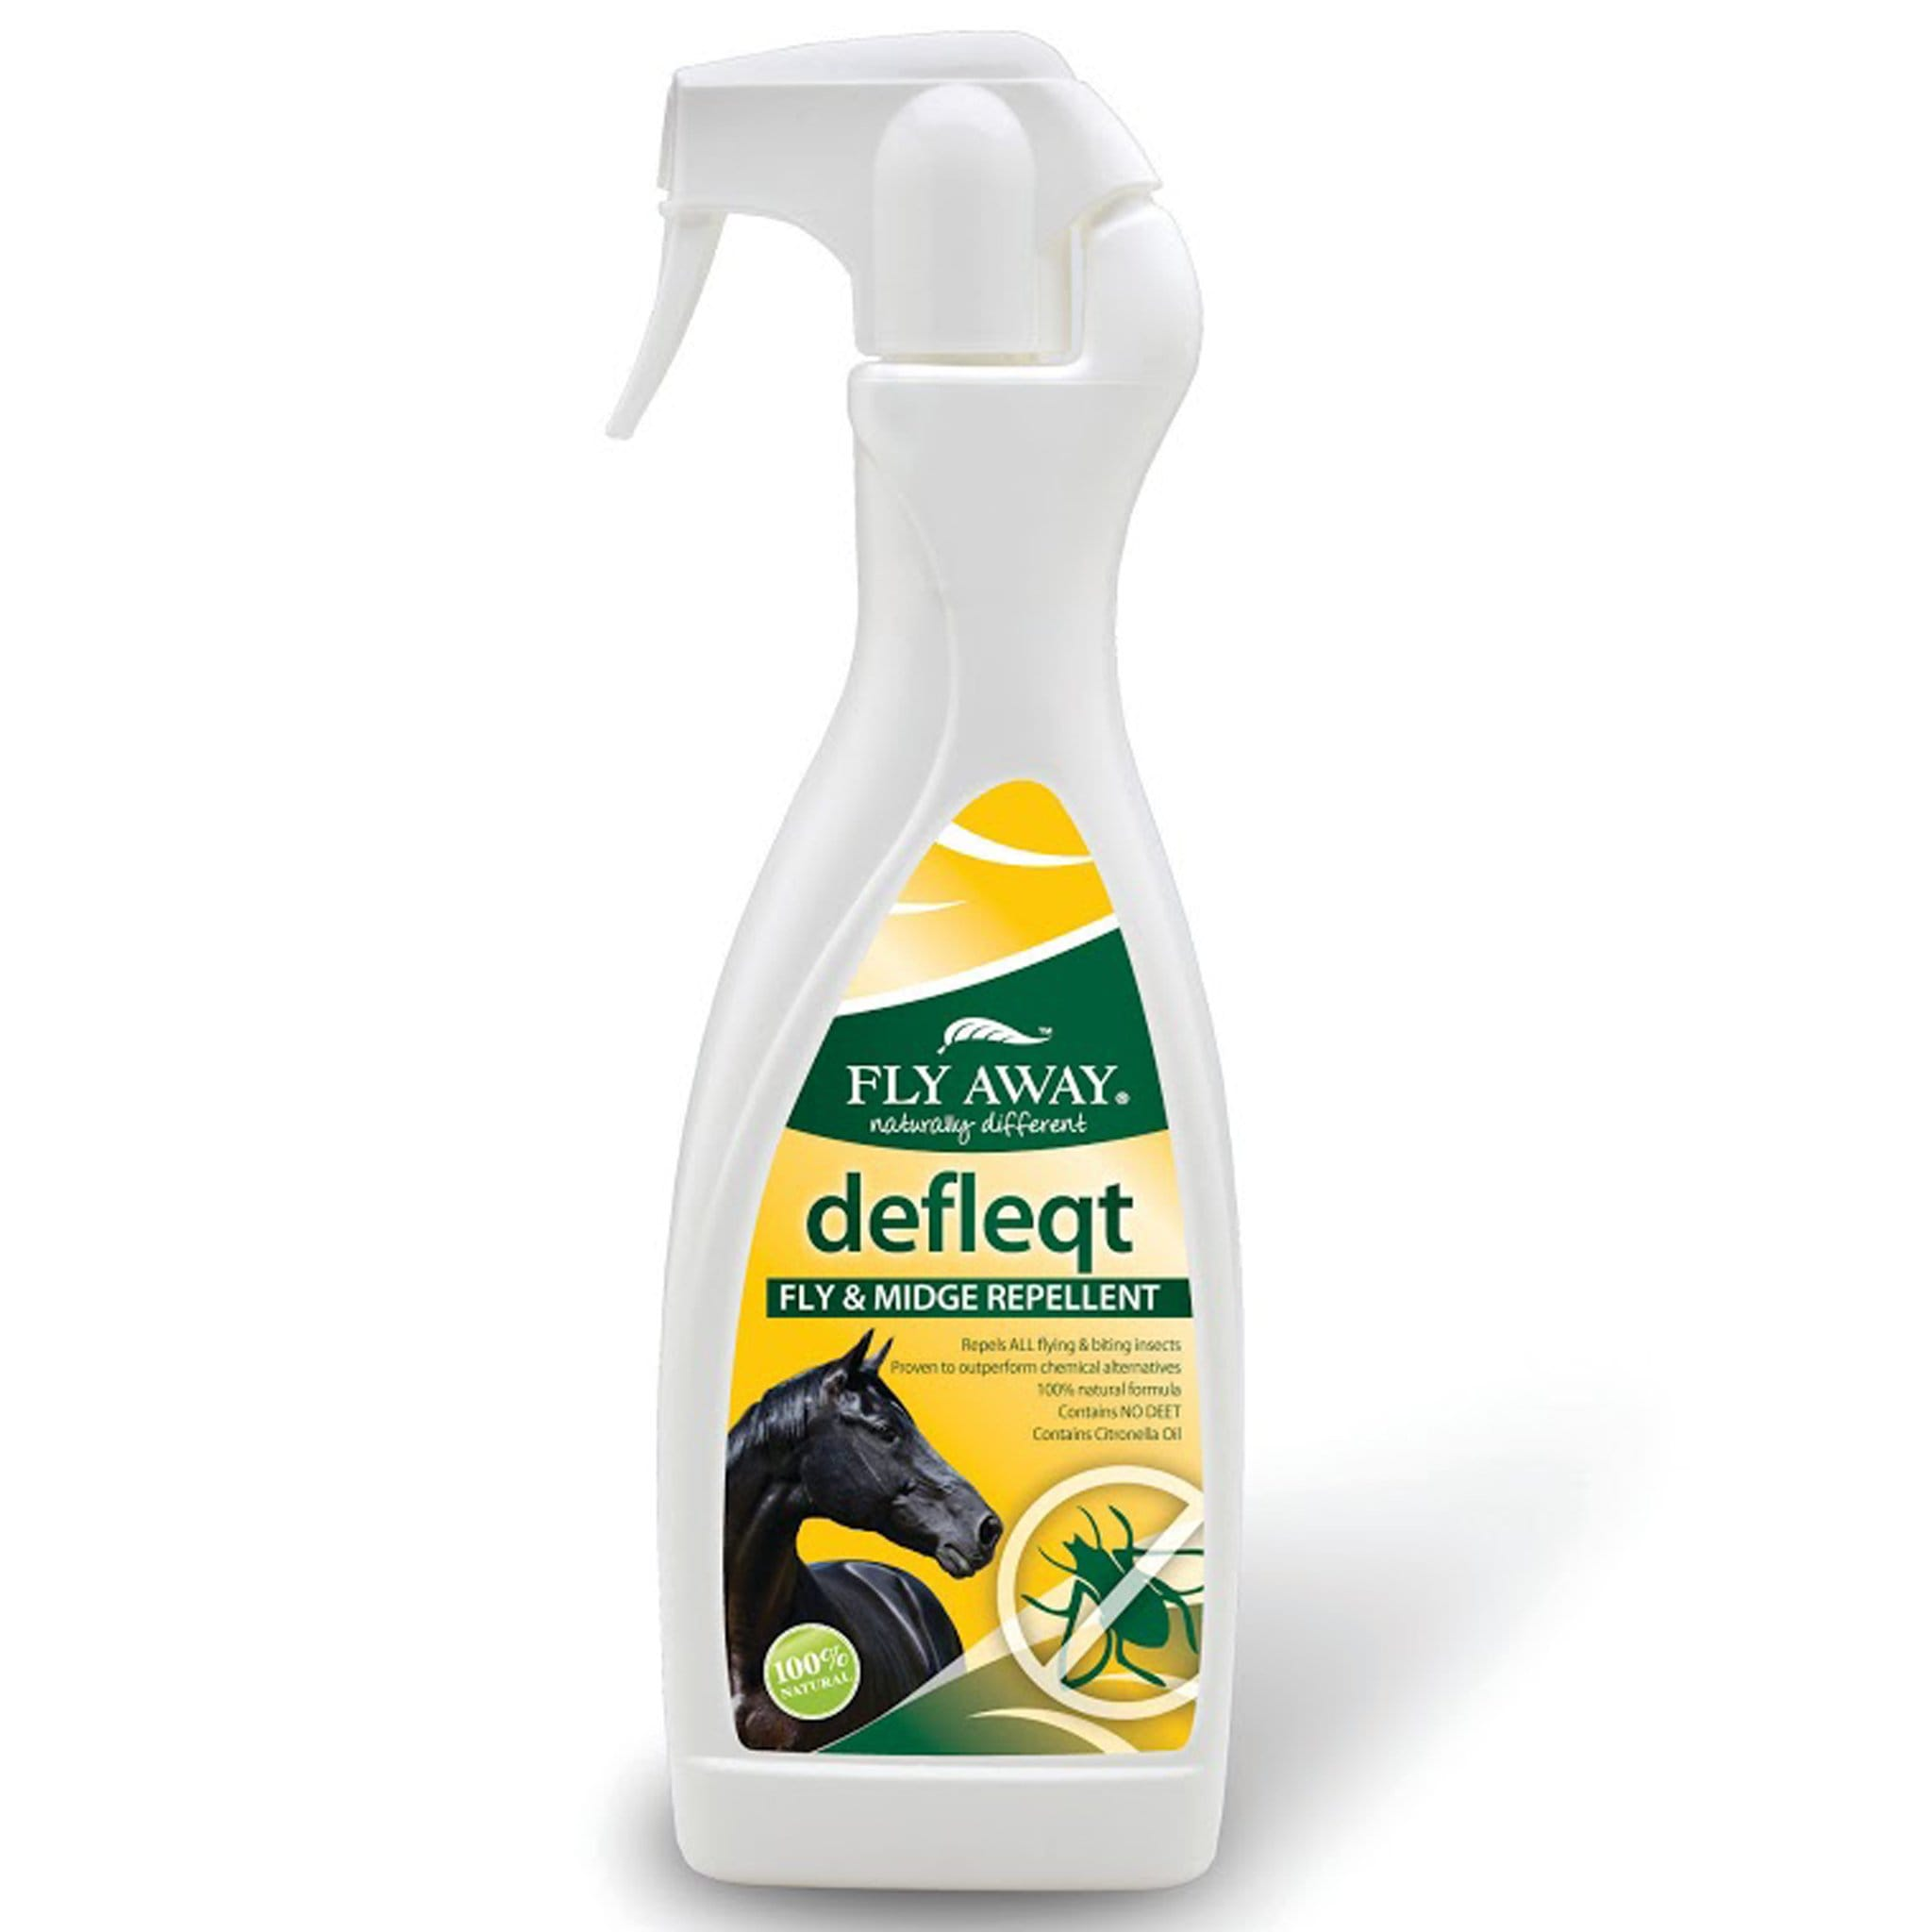 Fly Away Defleqt Fly And Insect Repellent 6901